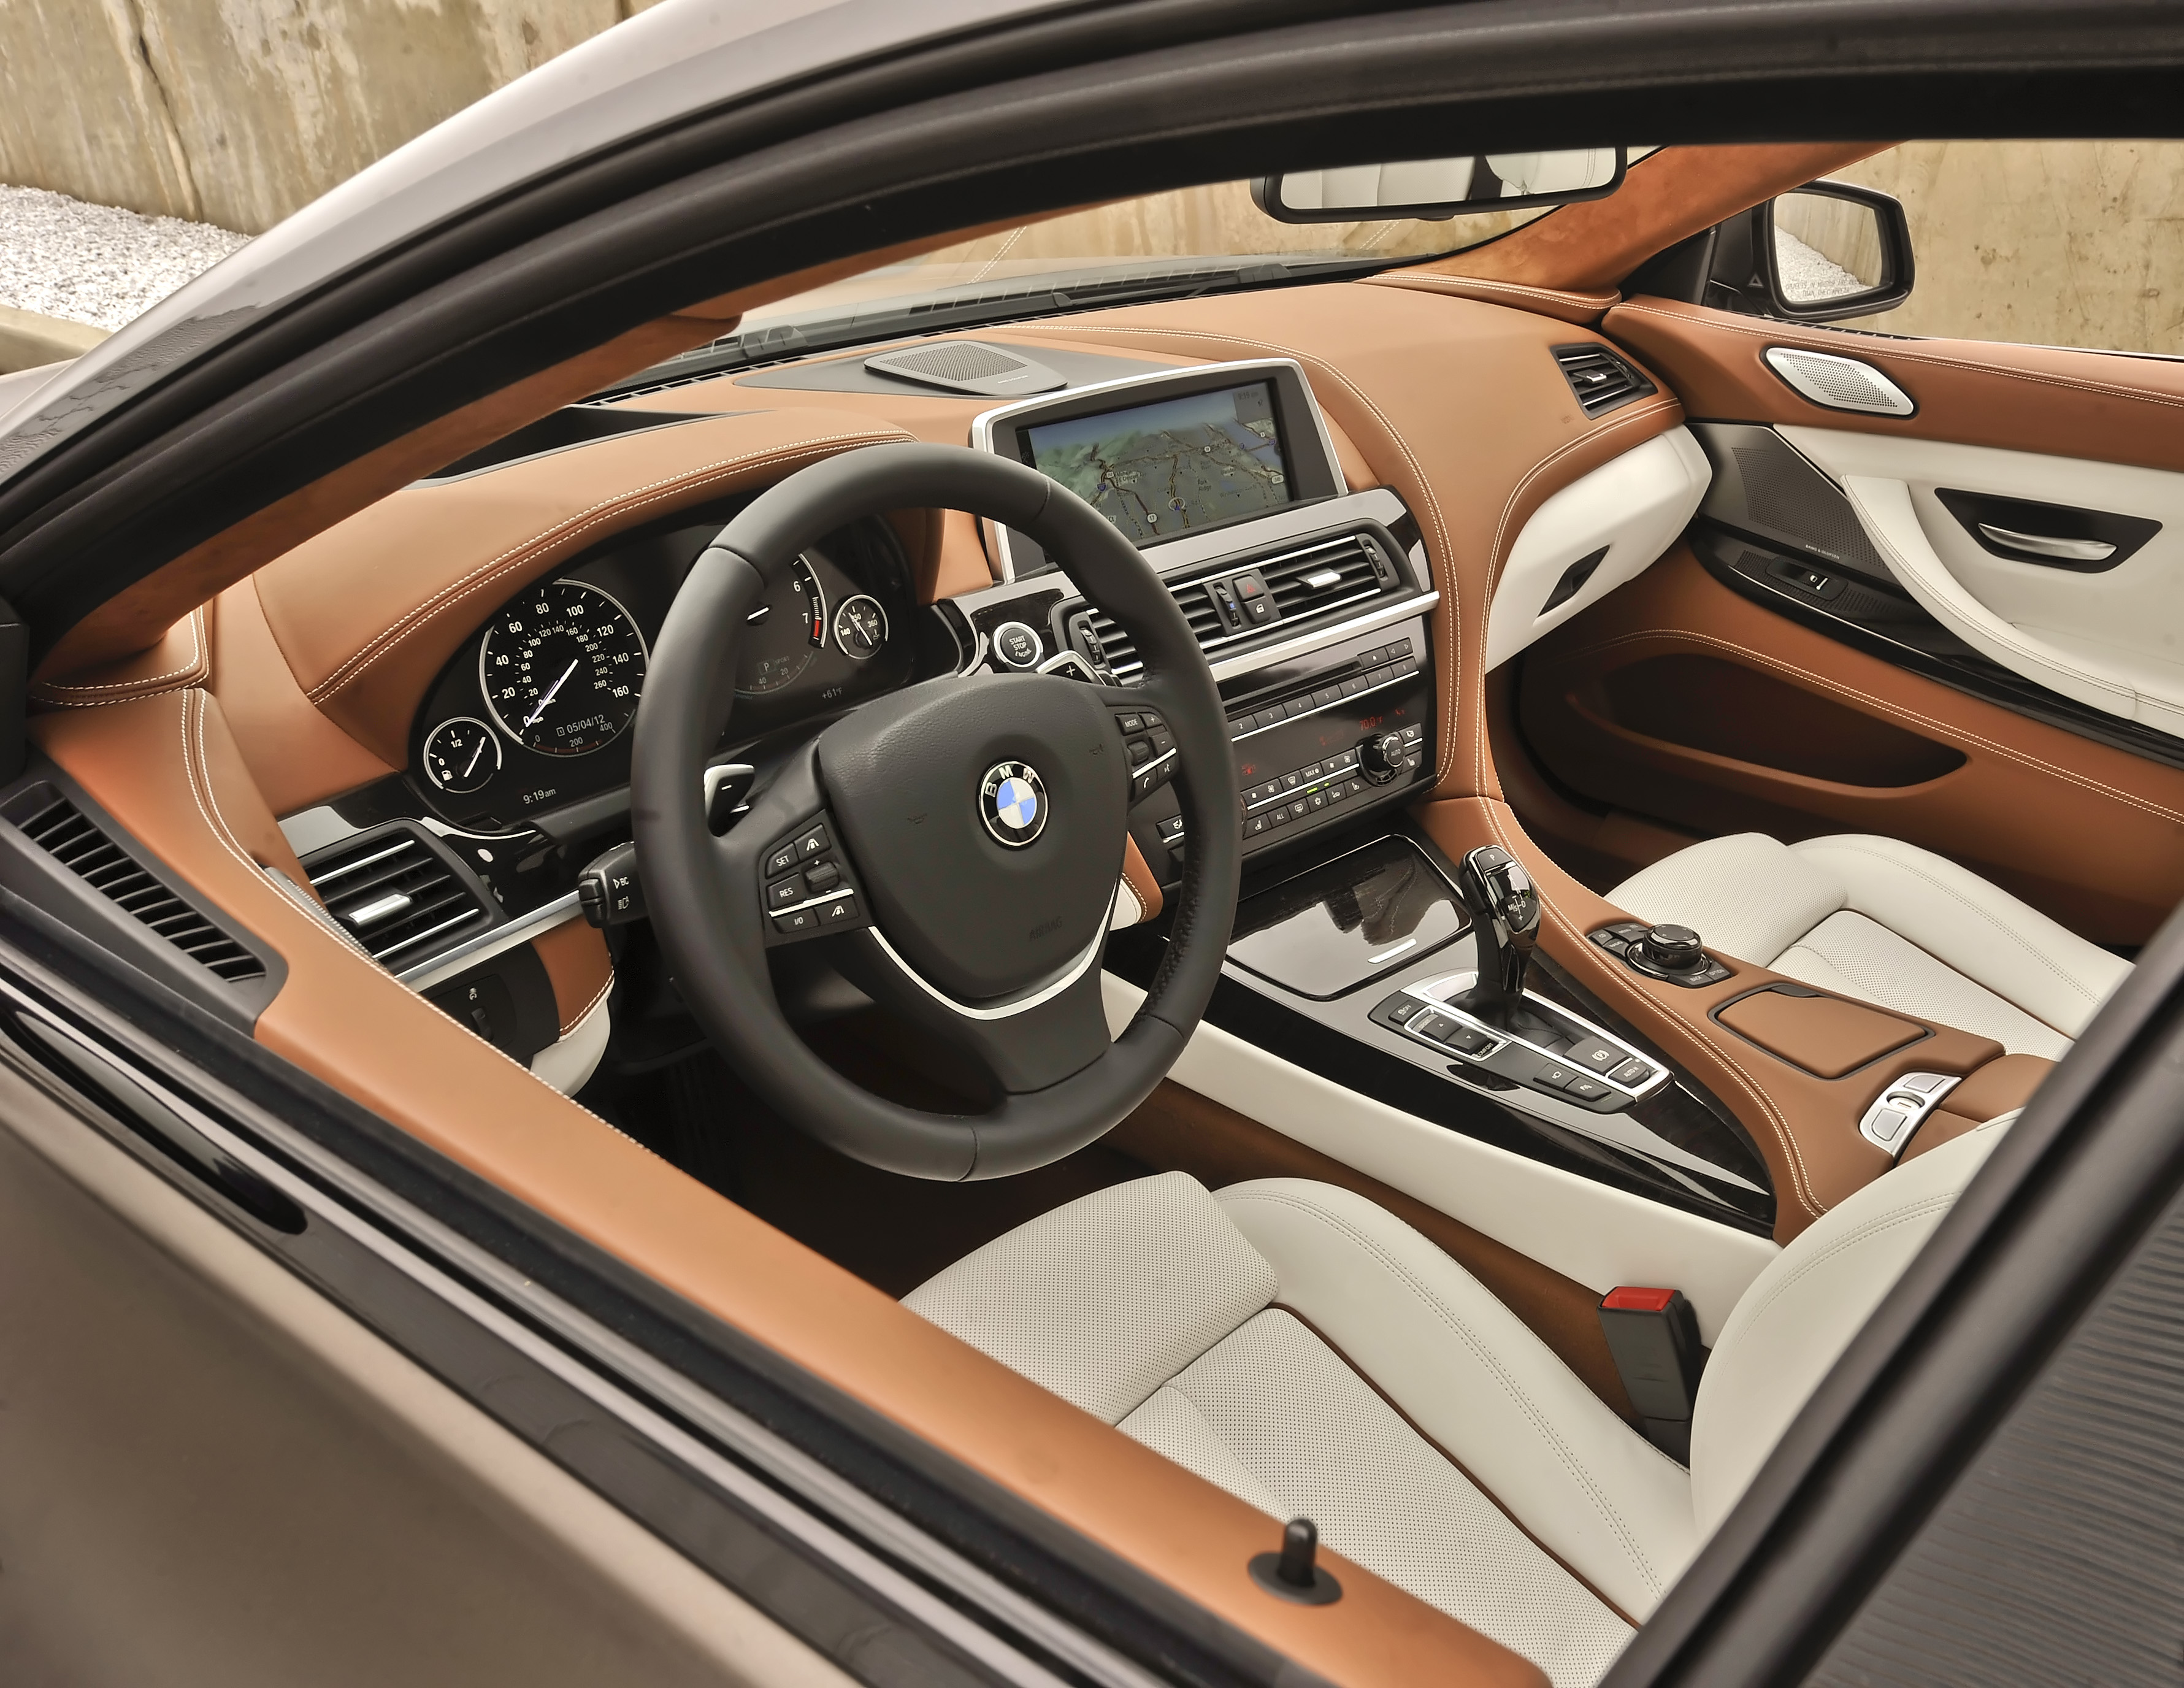 Manufacturer photo: BMW introduces the 2013 BMW 6 Series Gran Coupe -- a new 4-door, 4+1-seater added to the 6 Series line